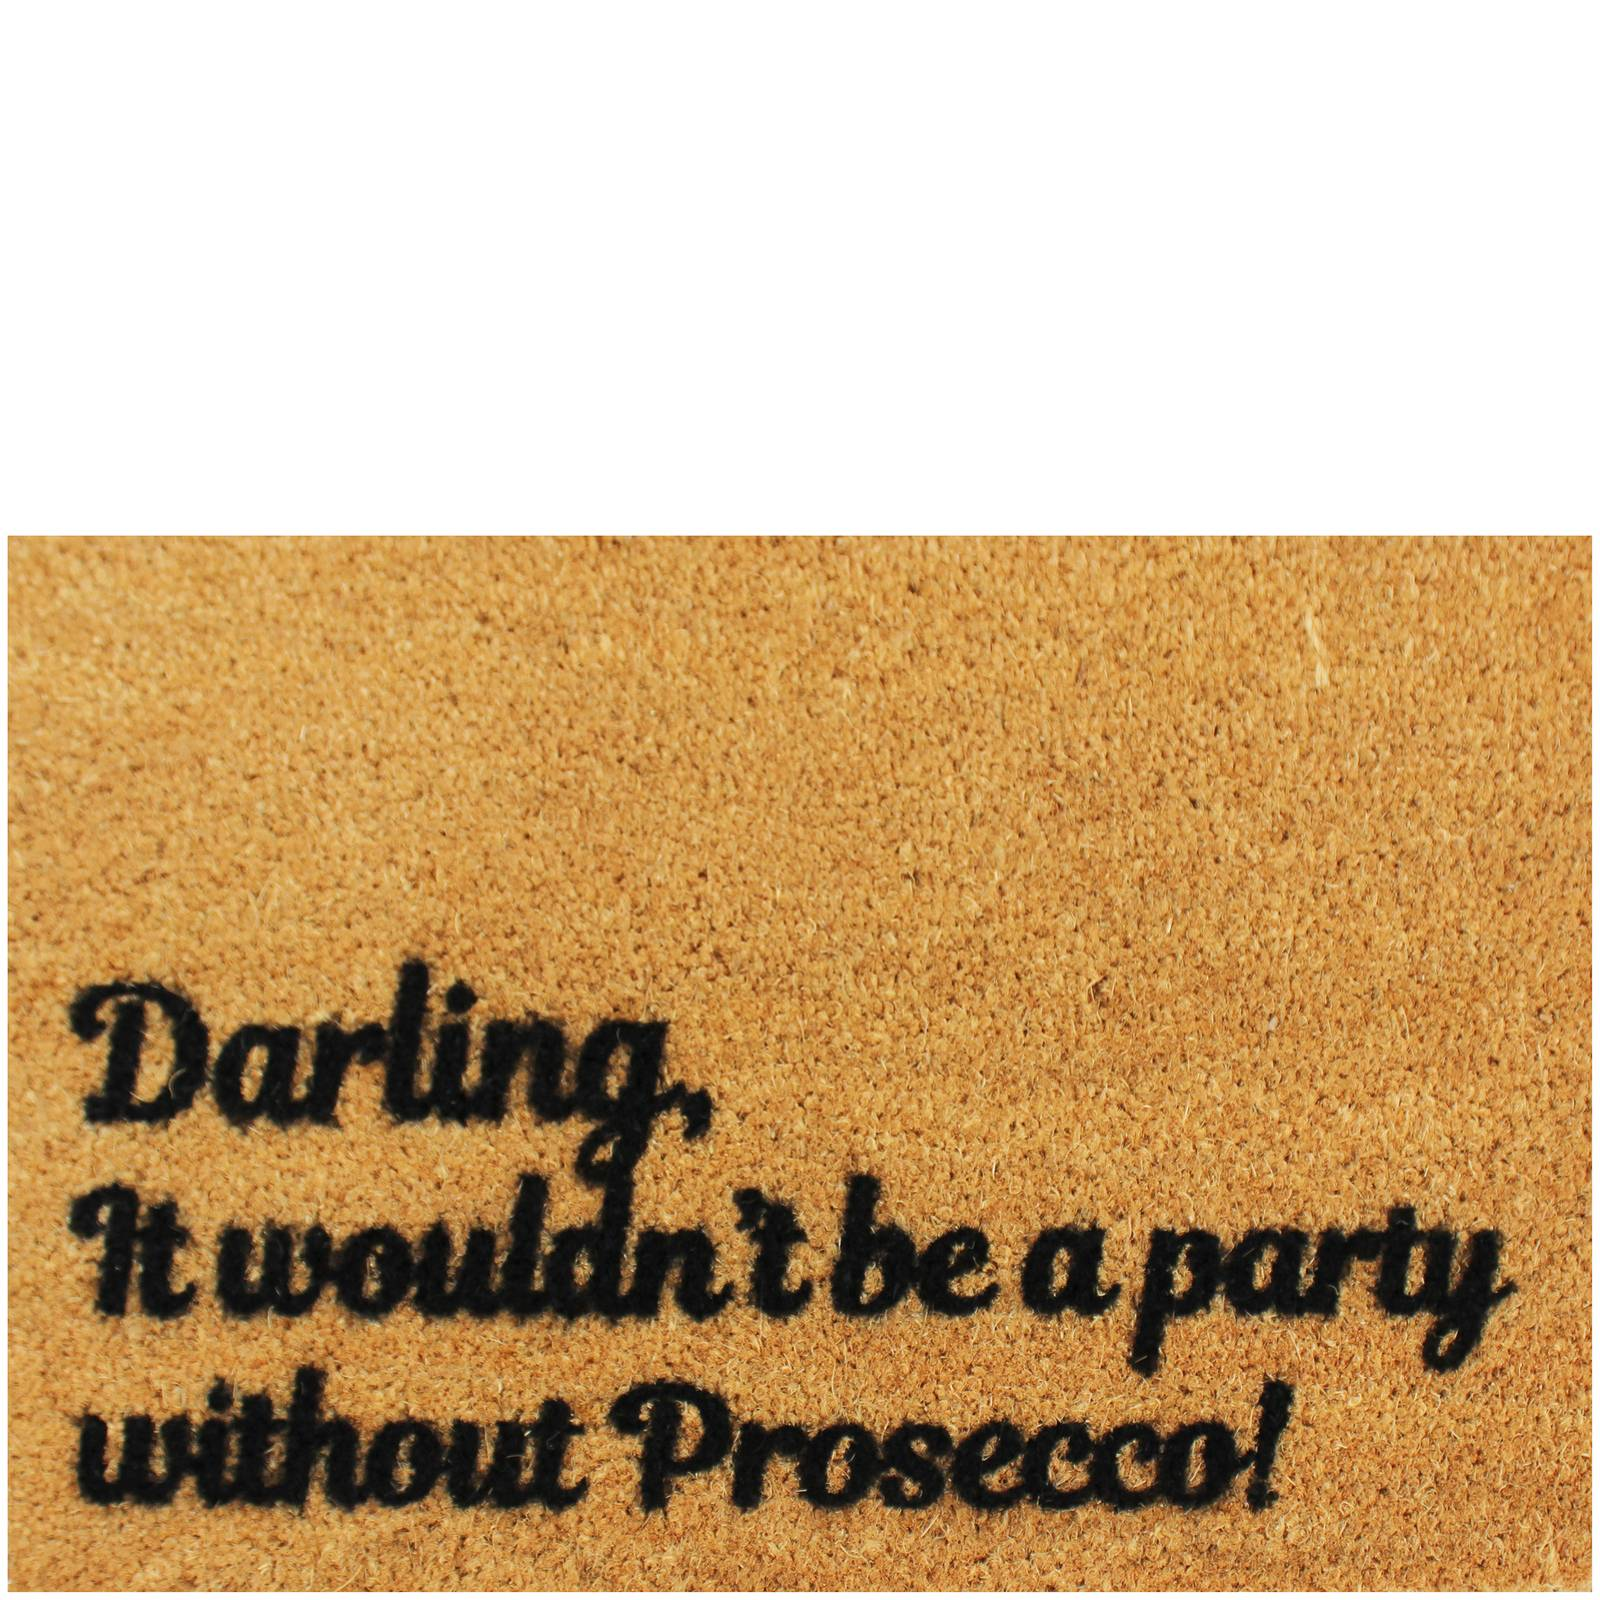 Artsy Doormats Darling, it Wouldn't be a Party Without Prosecco Doormat